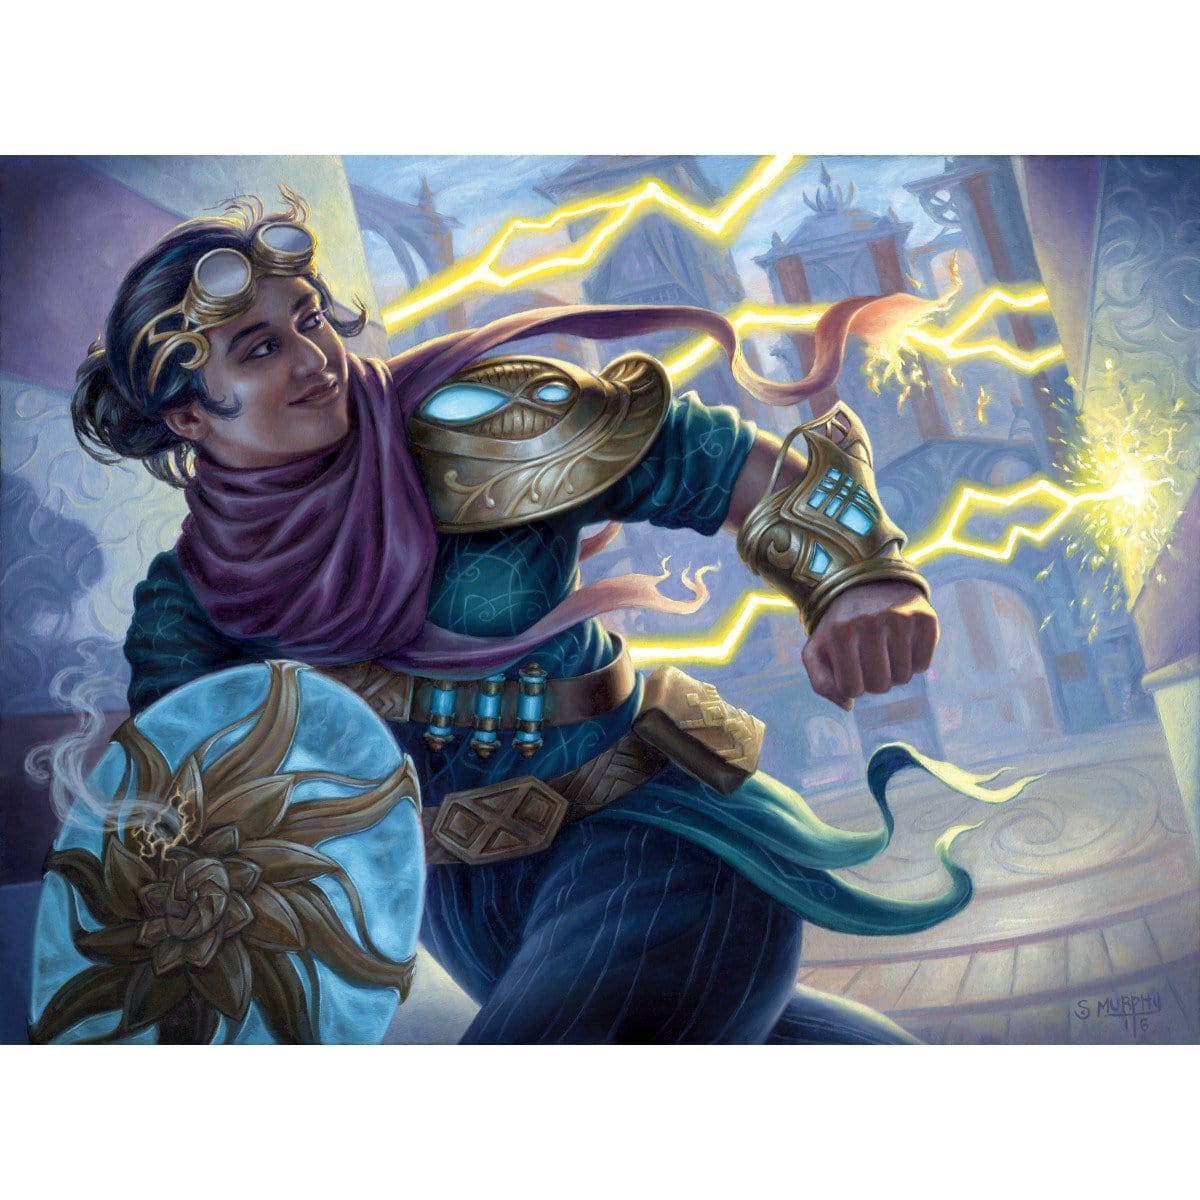 Alley Evasion Print - Print - Original Magic Art - Accessories for Magic the Gathering and other card games